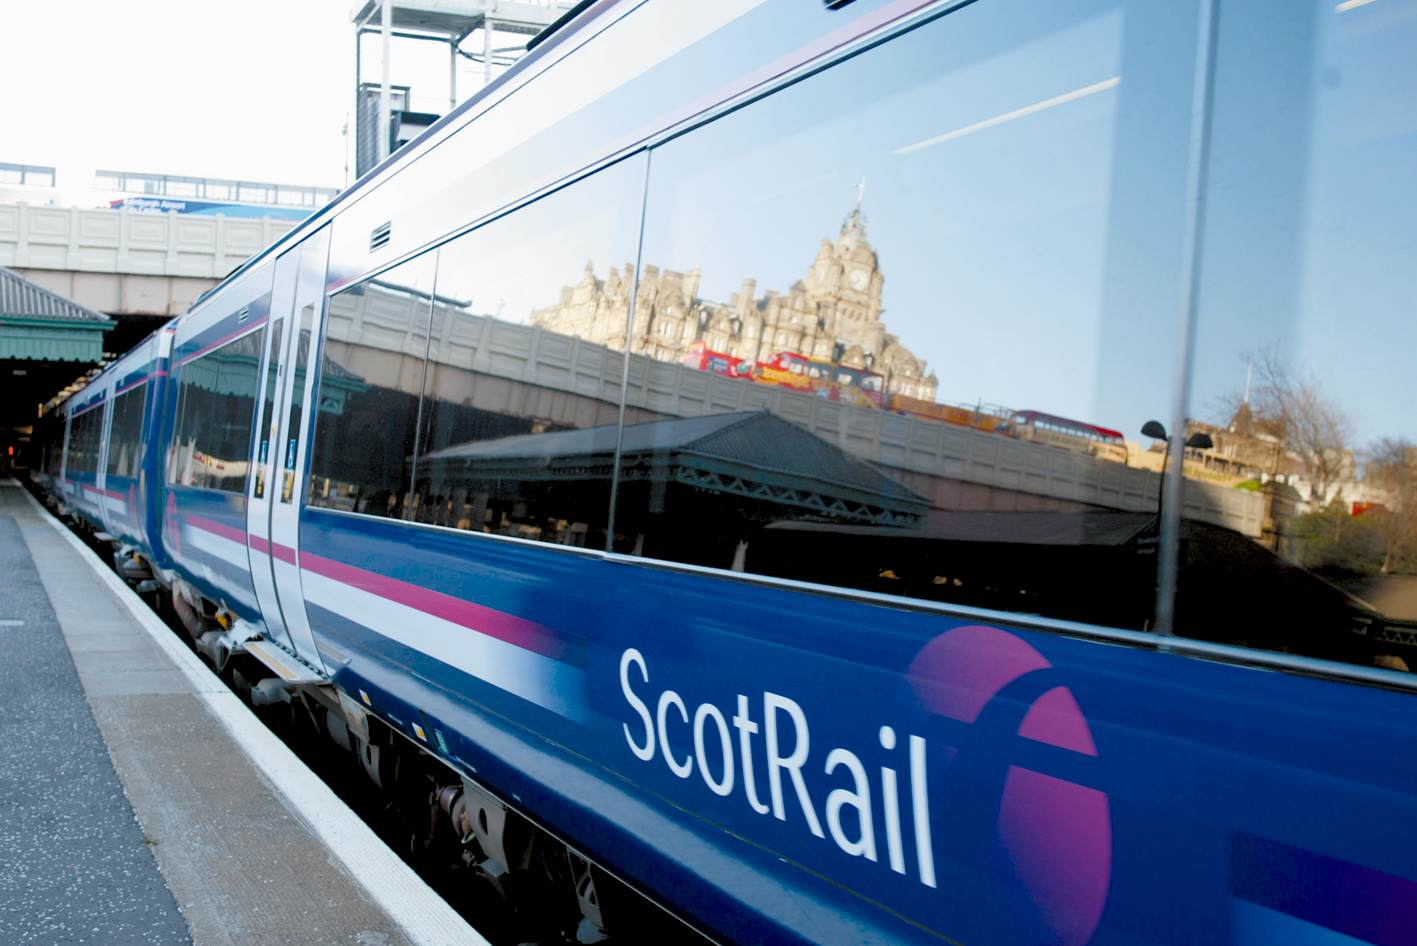 Rail - 7 railway stations within 5 miles, providing direct links with Glasgow, Edinburgh, Newcastle, Manchester and London.